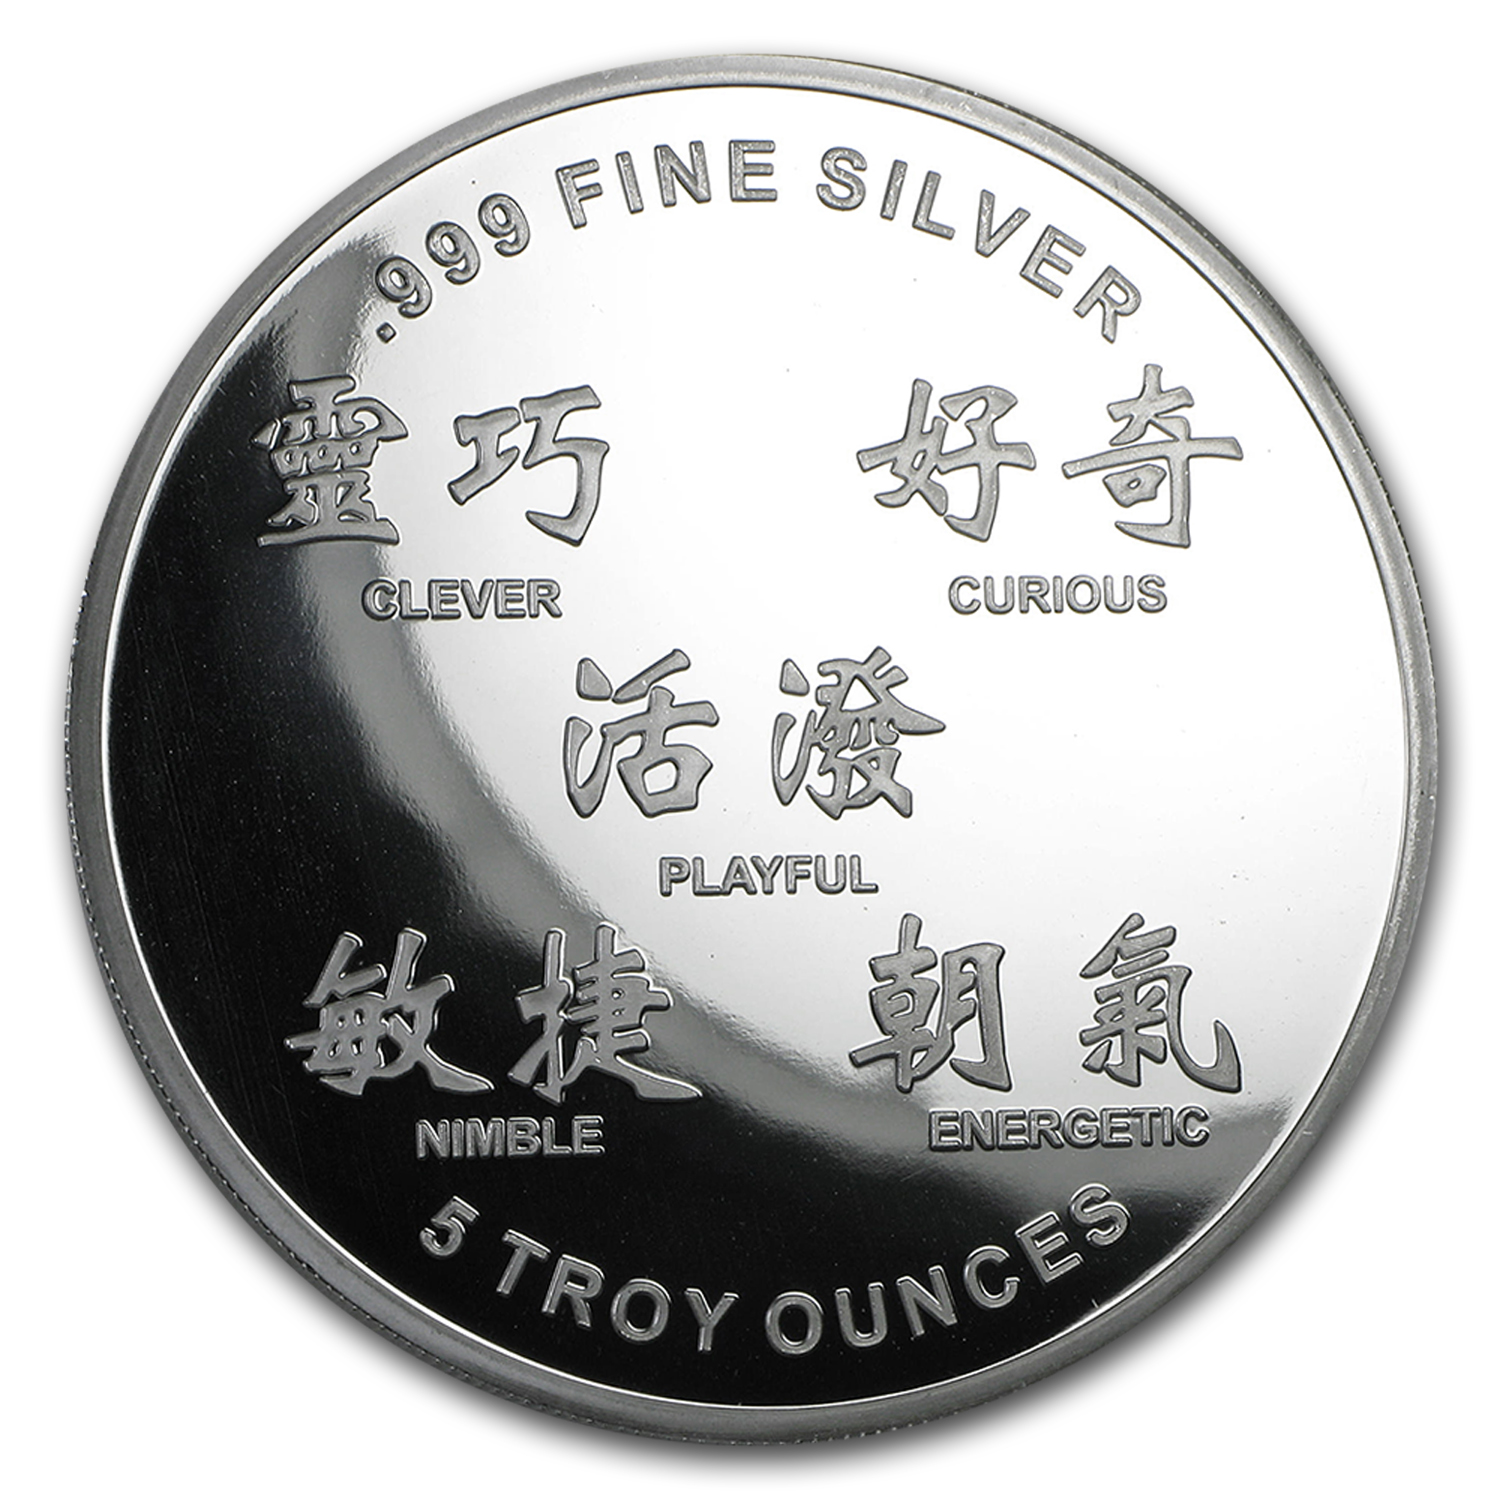 5 oz Silver Round - APMEX (2016 Year of the Monkey)